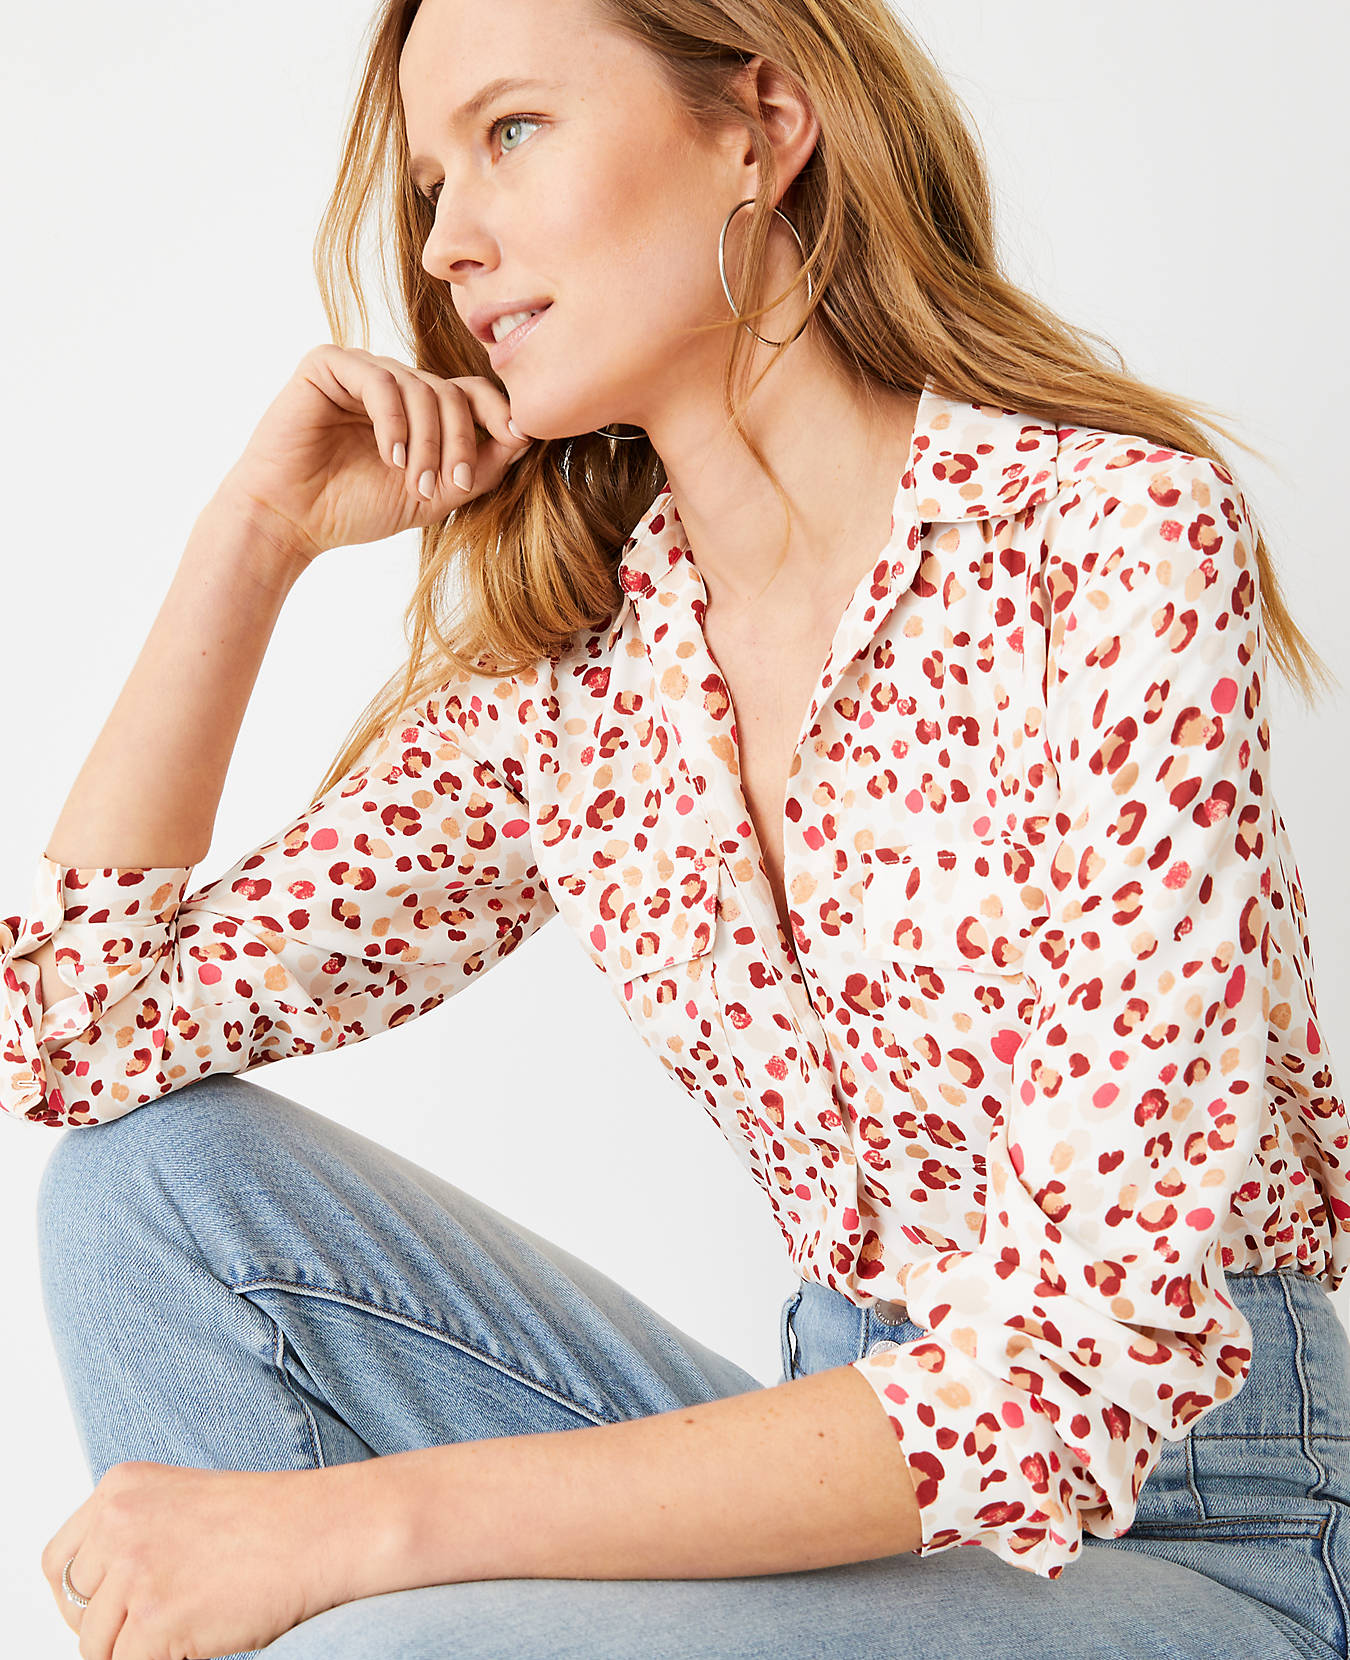 Ann Taylor: Up to 70% off sale styles